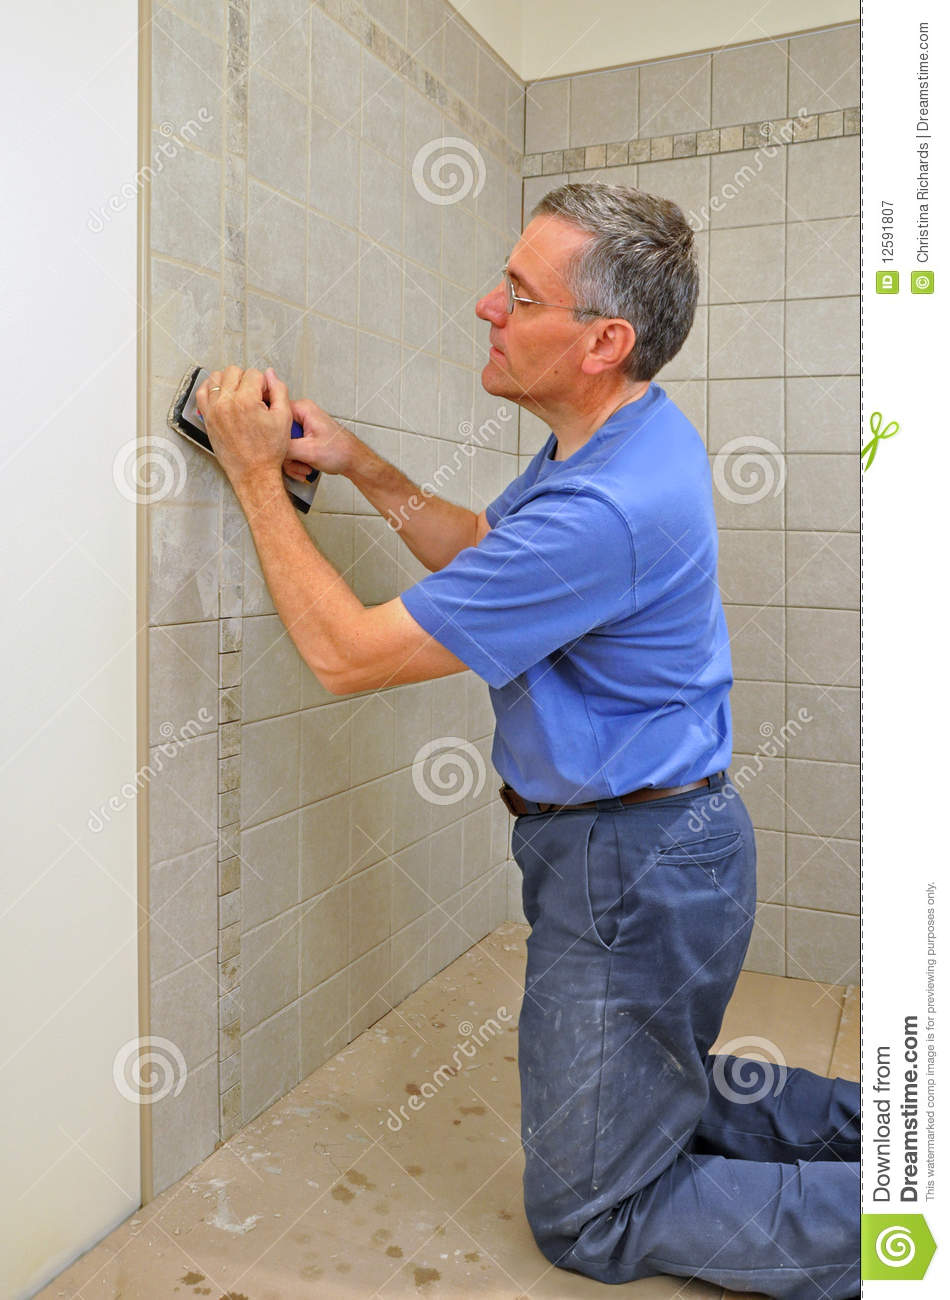 Man Grouting Ceramic Tile In Bathroom Royalty Free Stock Photography Image